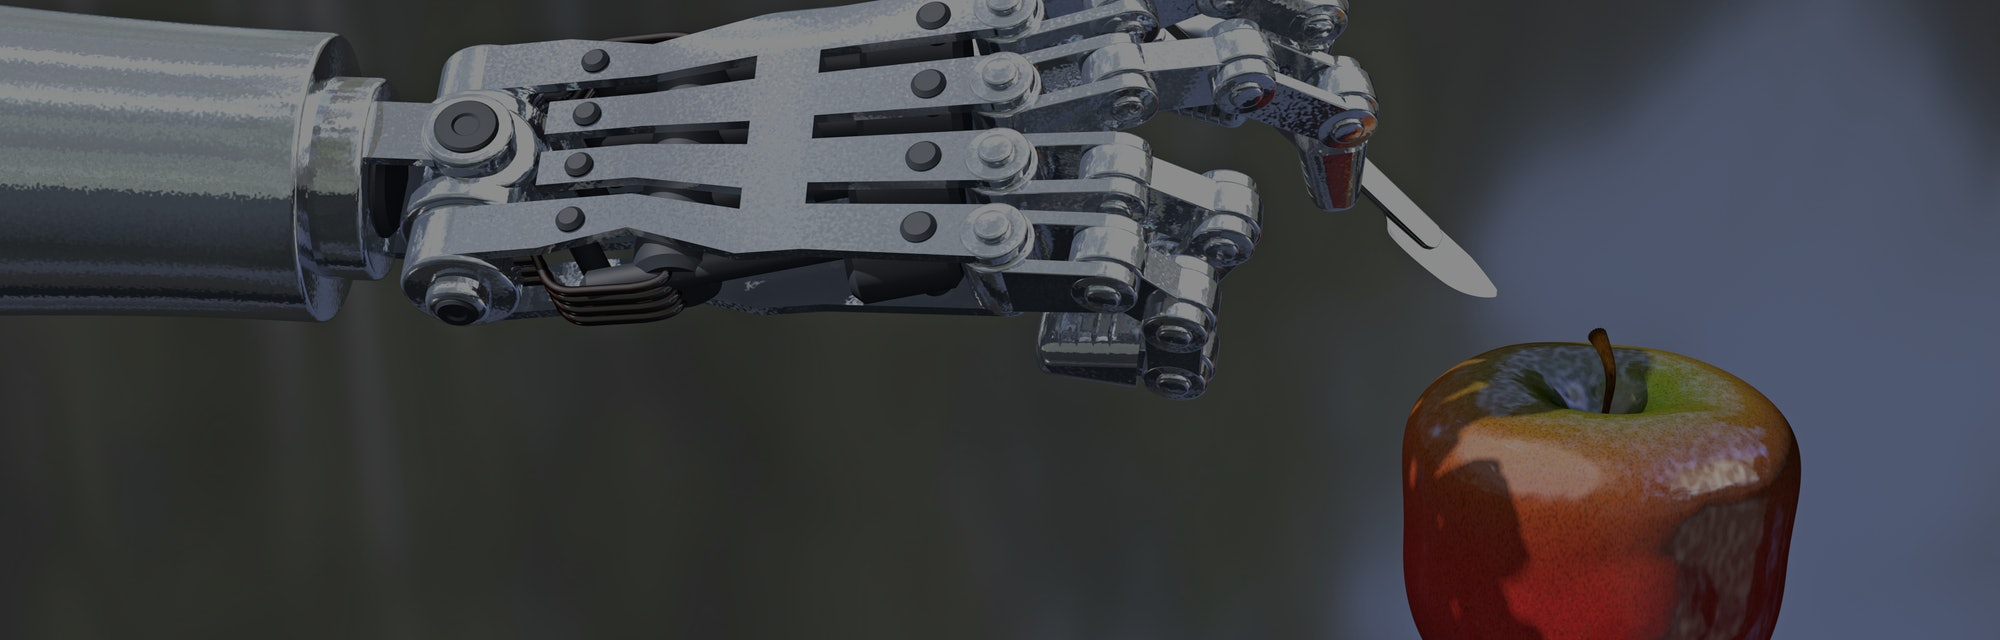 3D illustration of a robot hand holding a scalpel about to cut into an apple, reflective surface for dramatic effect. Metaphor for increasing use of technology to manipulate the food supply.